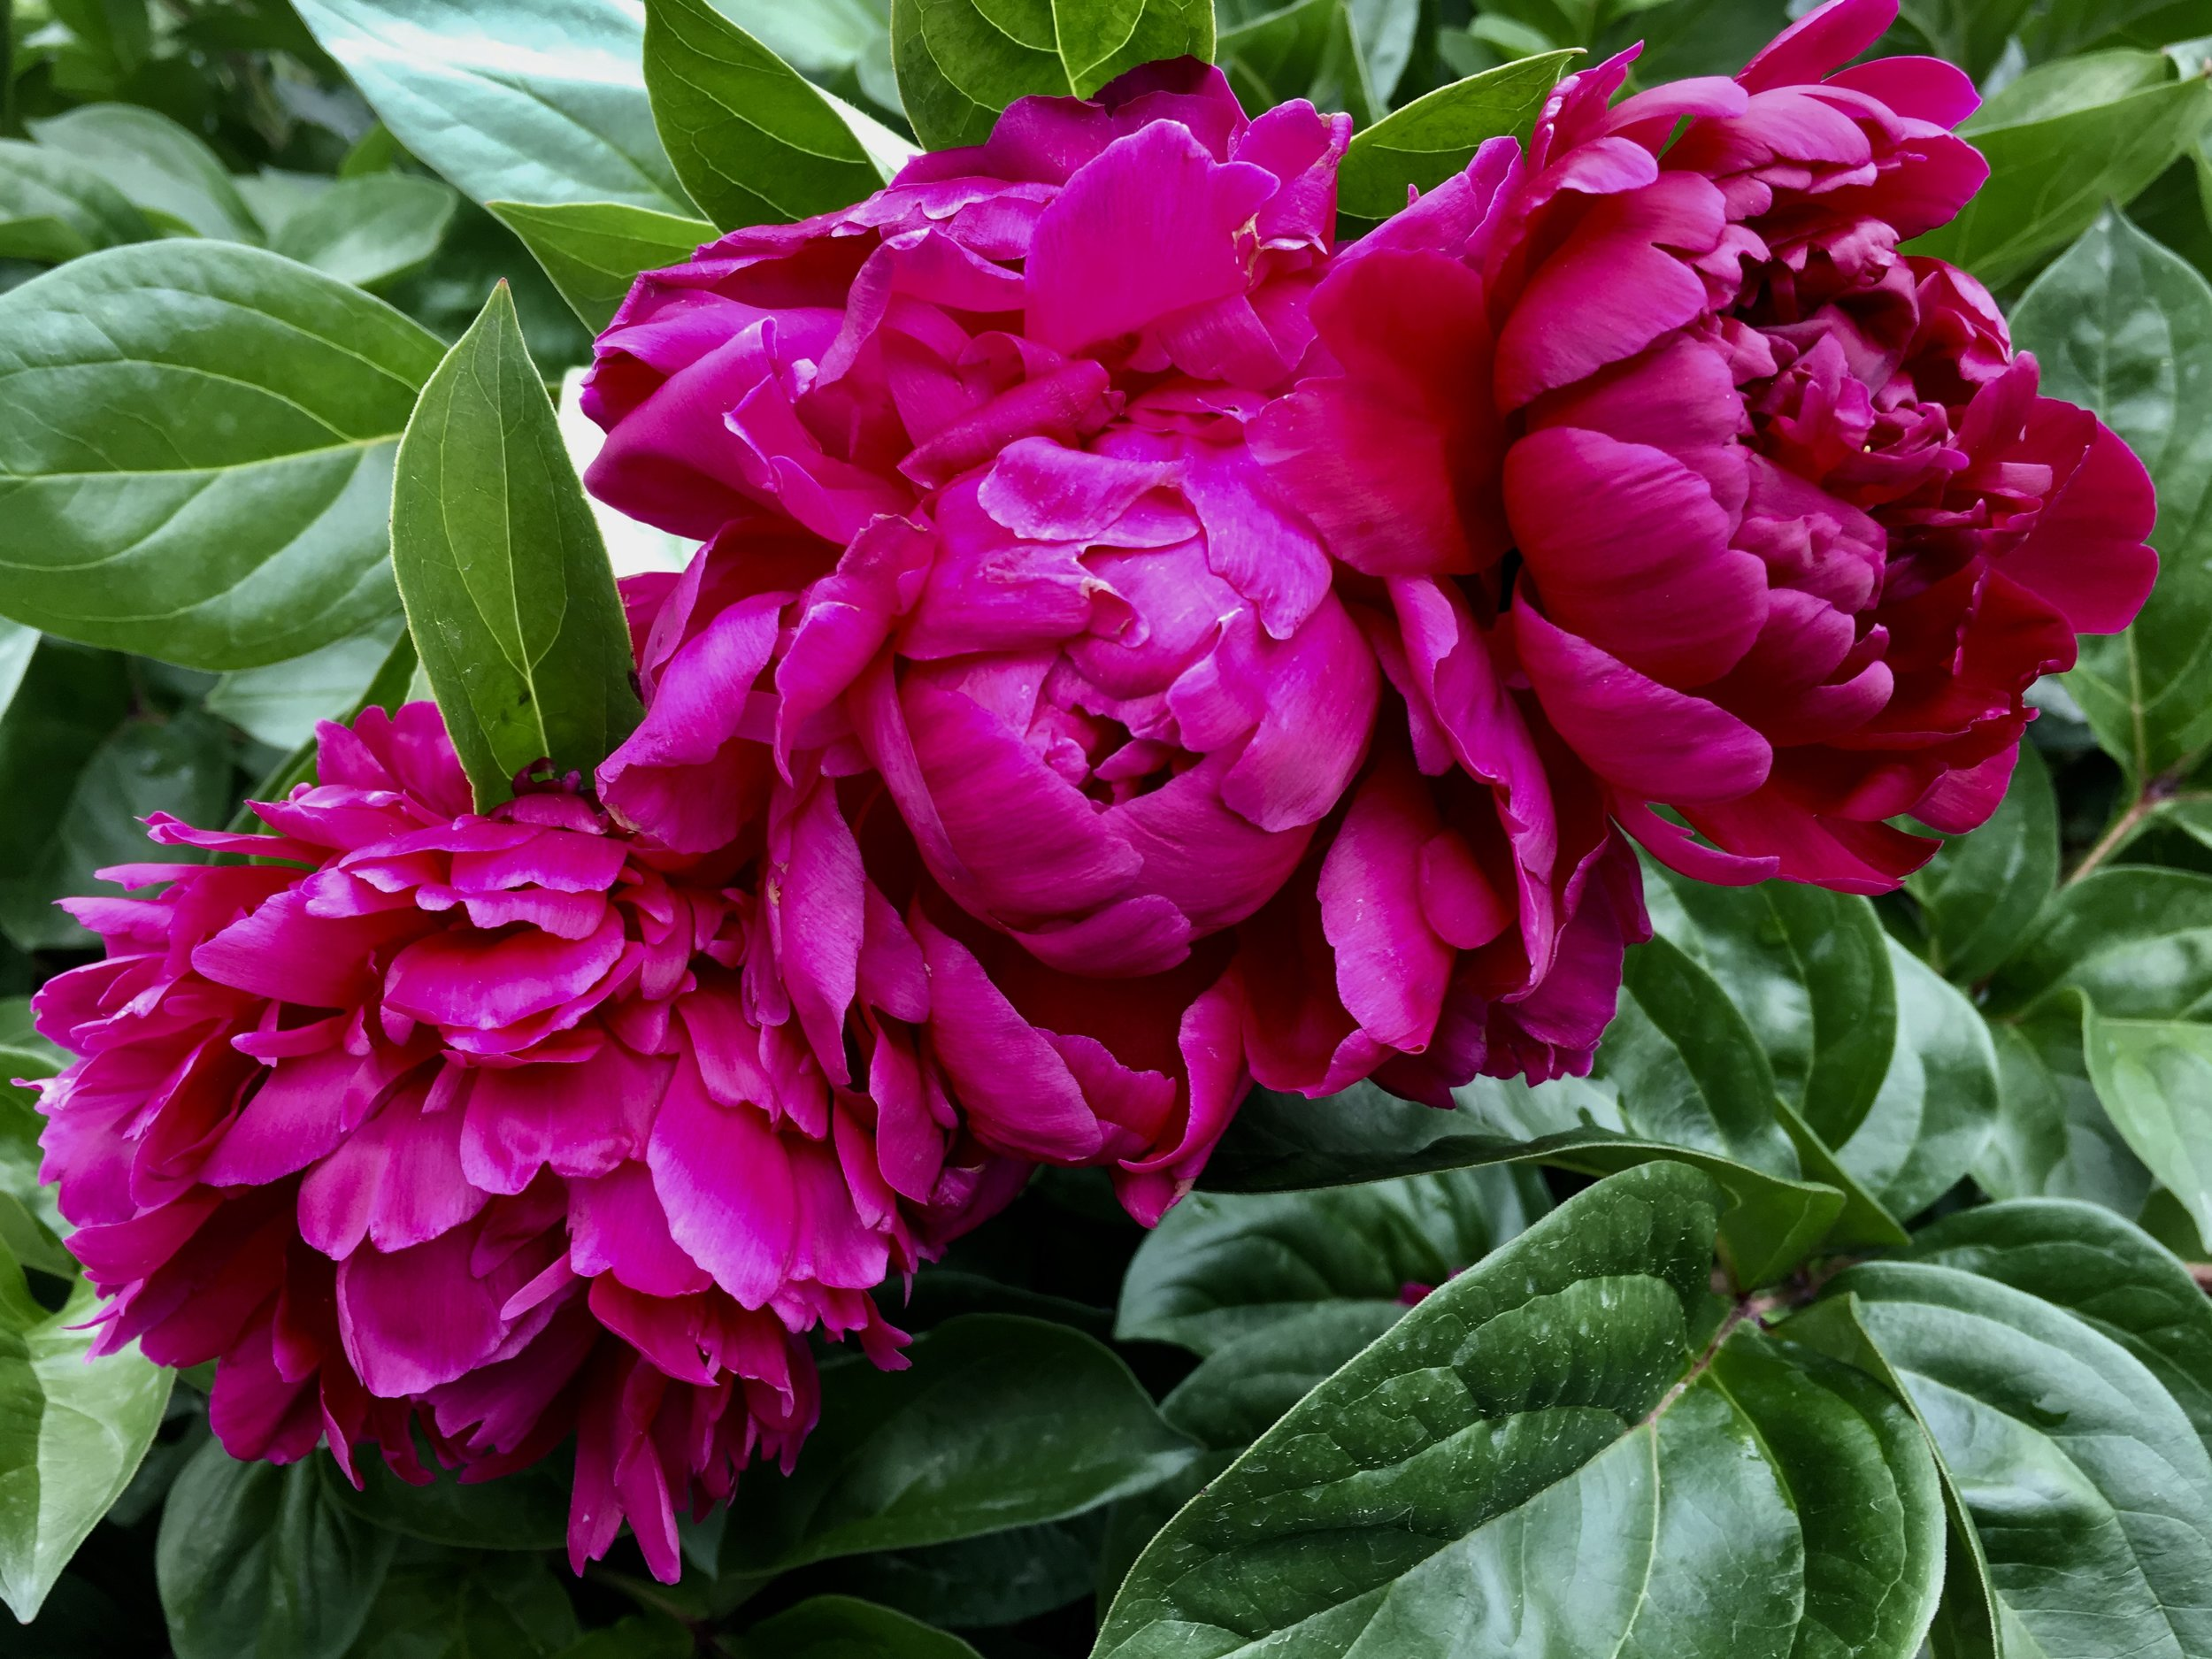 Peonies on a recent trip to China.